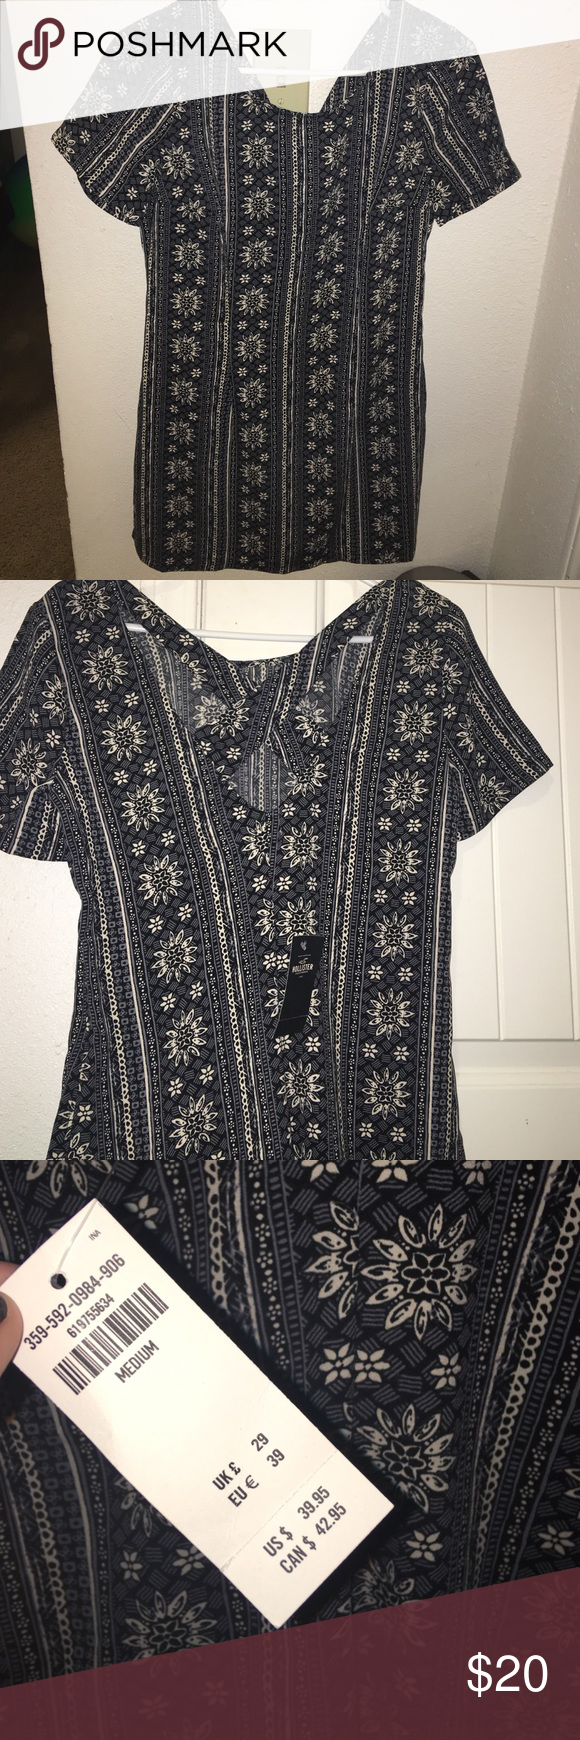 Hollister crossback dress Brand new with tag, it is above the knee , pretty black and white floral print Hollister Dresses